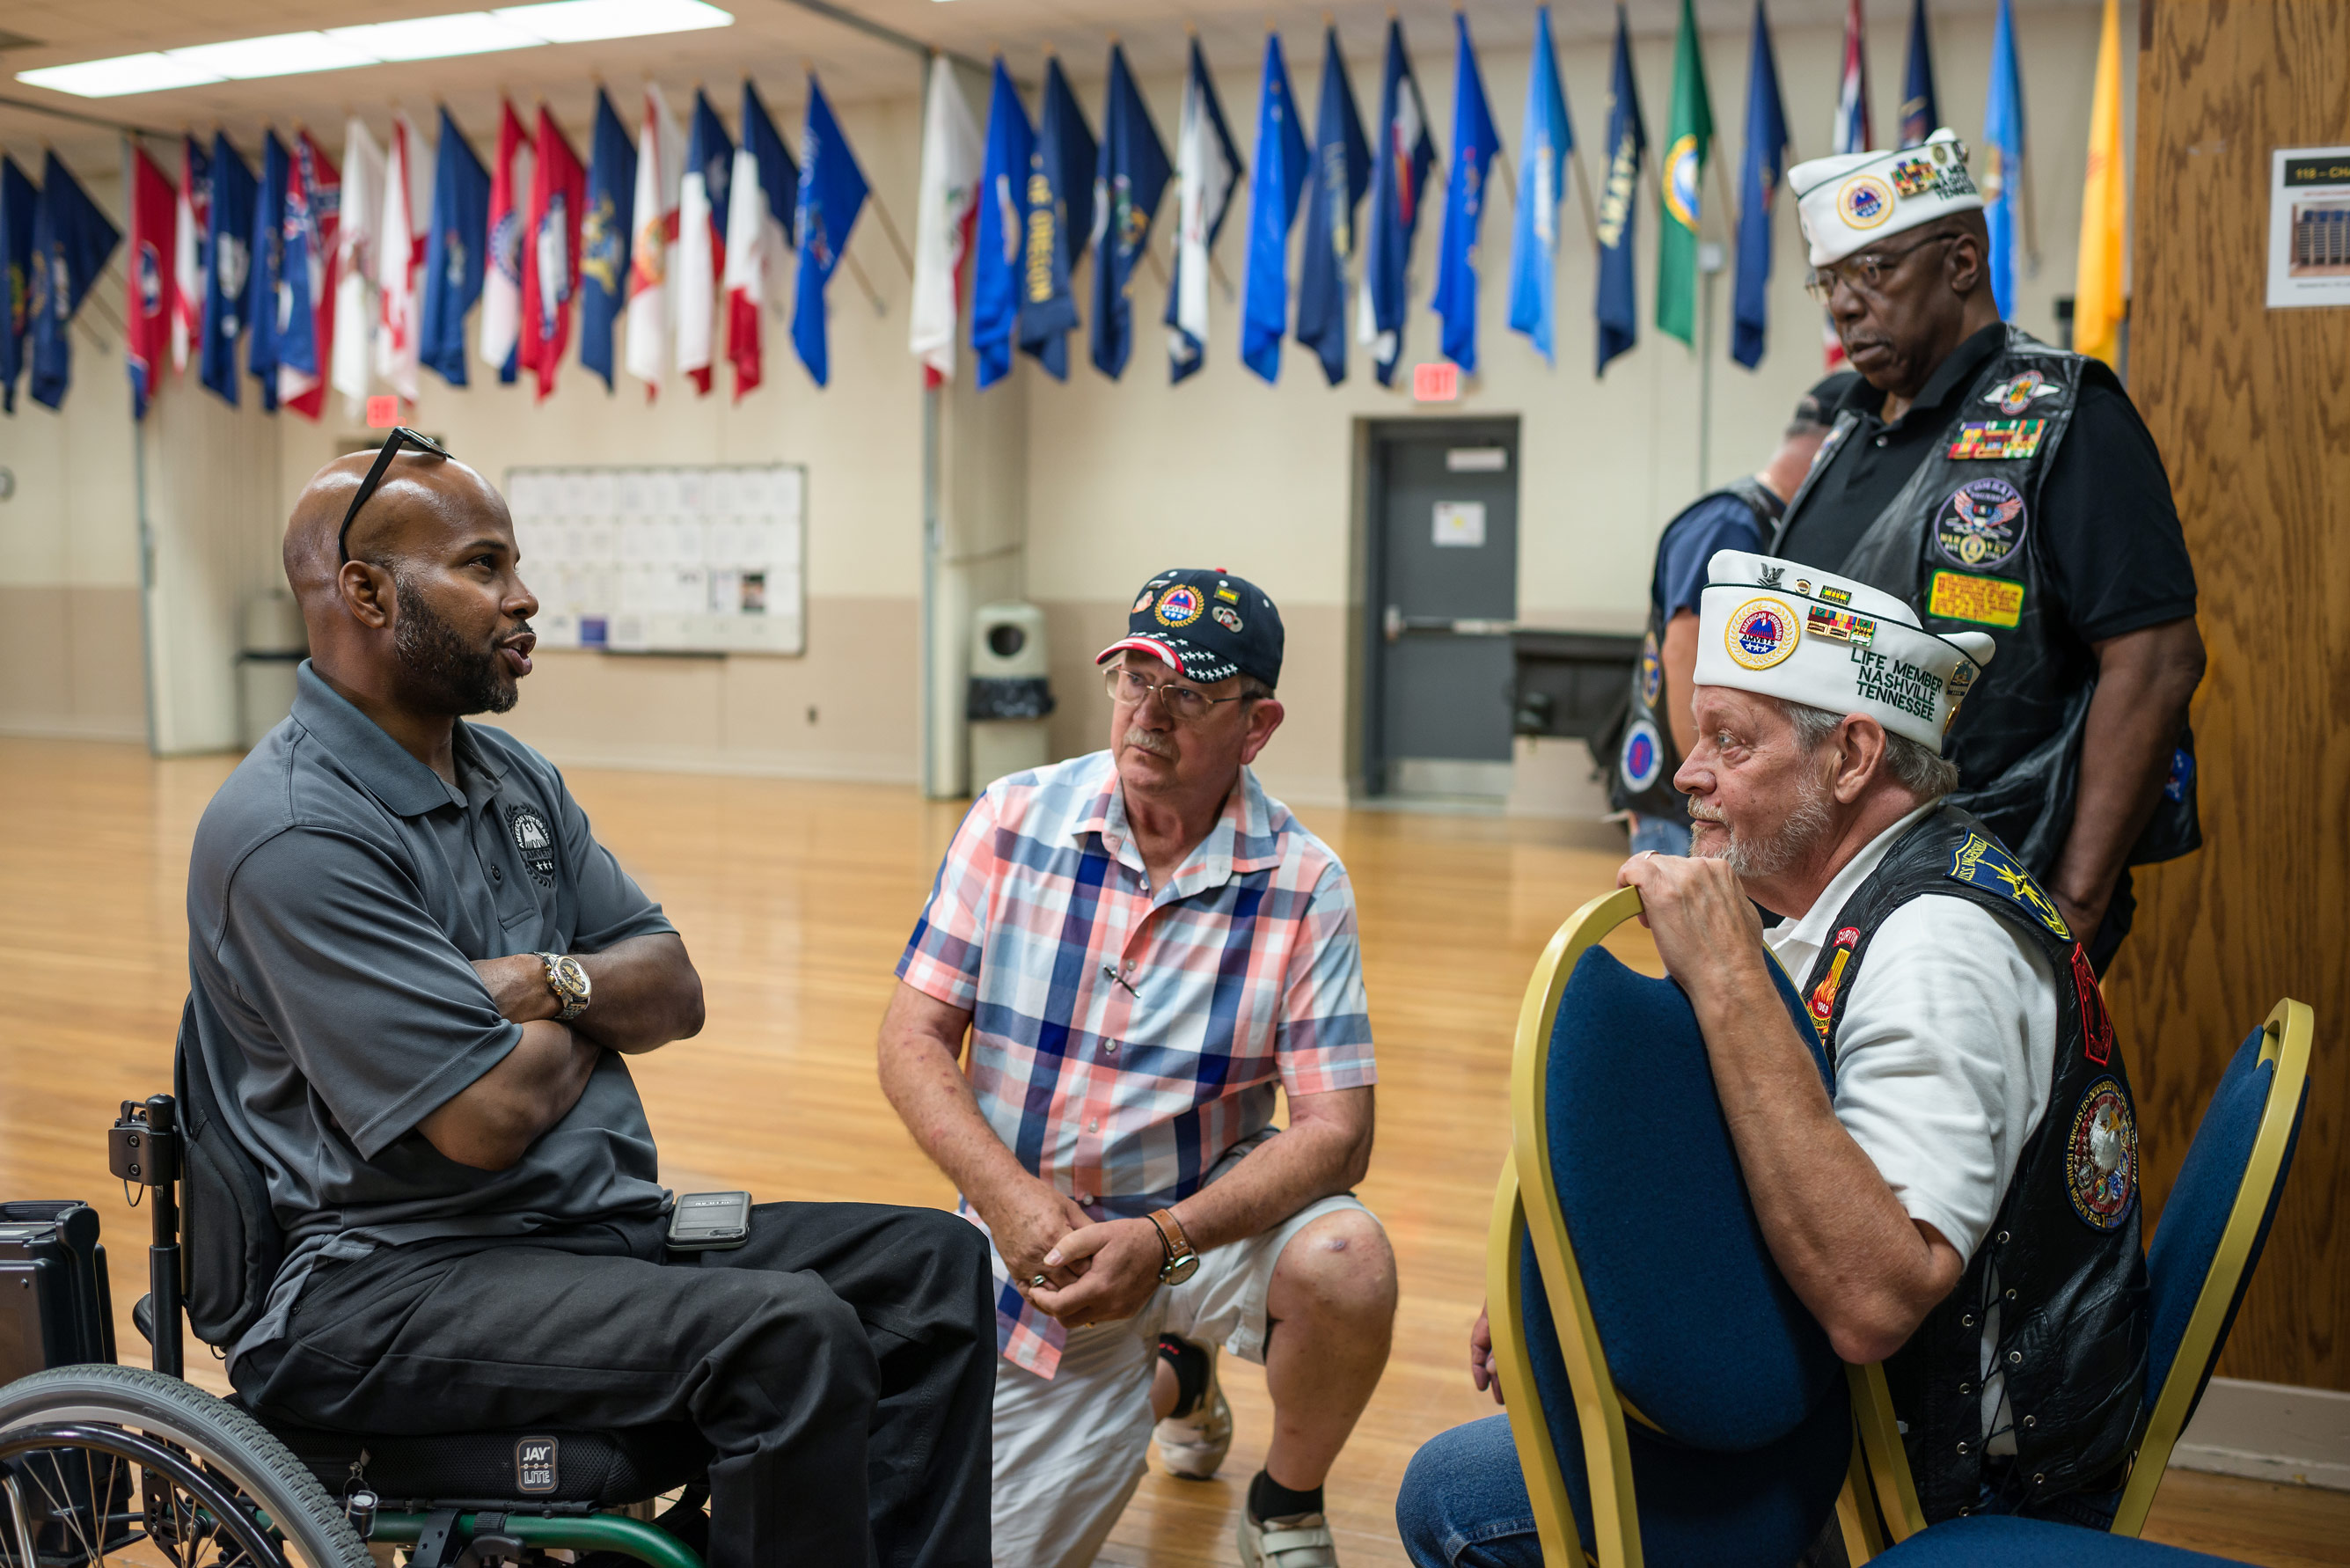 Veteran Healthcare, veterans affairs, Tennessee Valley, Murfreesboro, Nashville, suicide, portrait, photojournalism, reportage, documentary, National Public Radio, NPR, Kristina Krug, editorial photographer